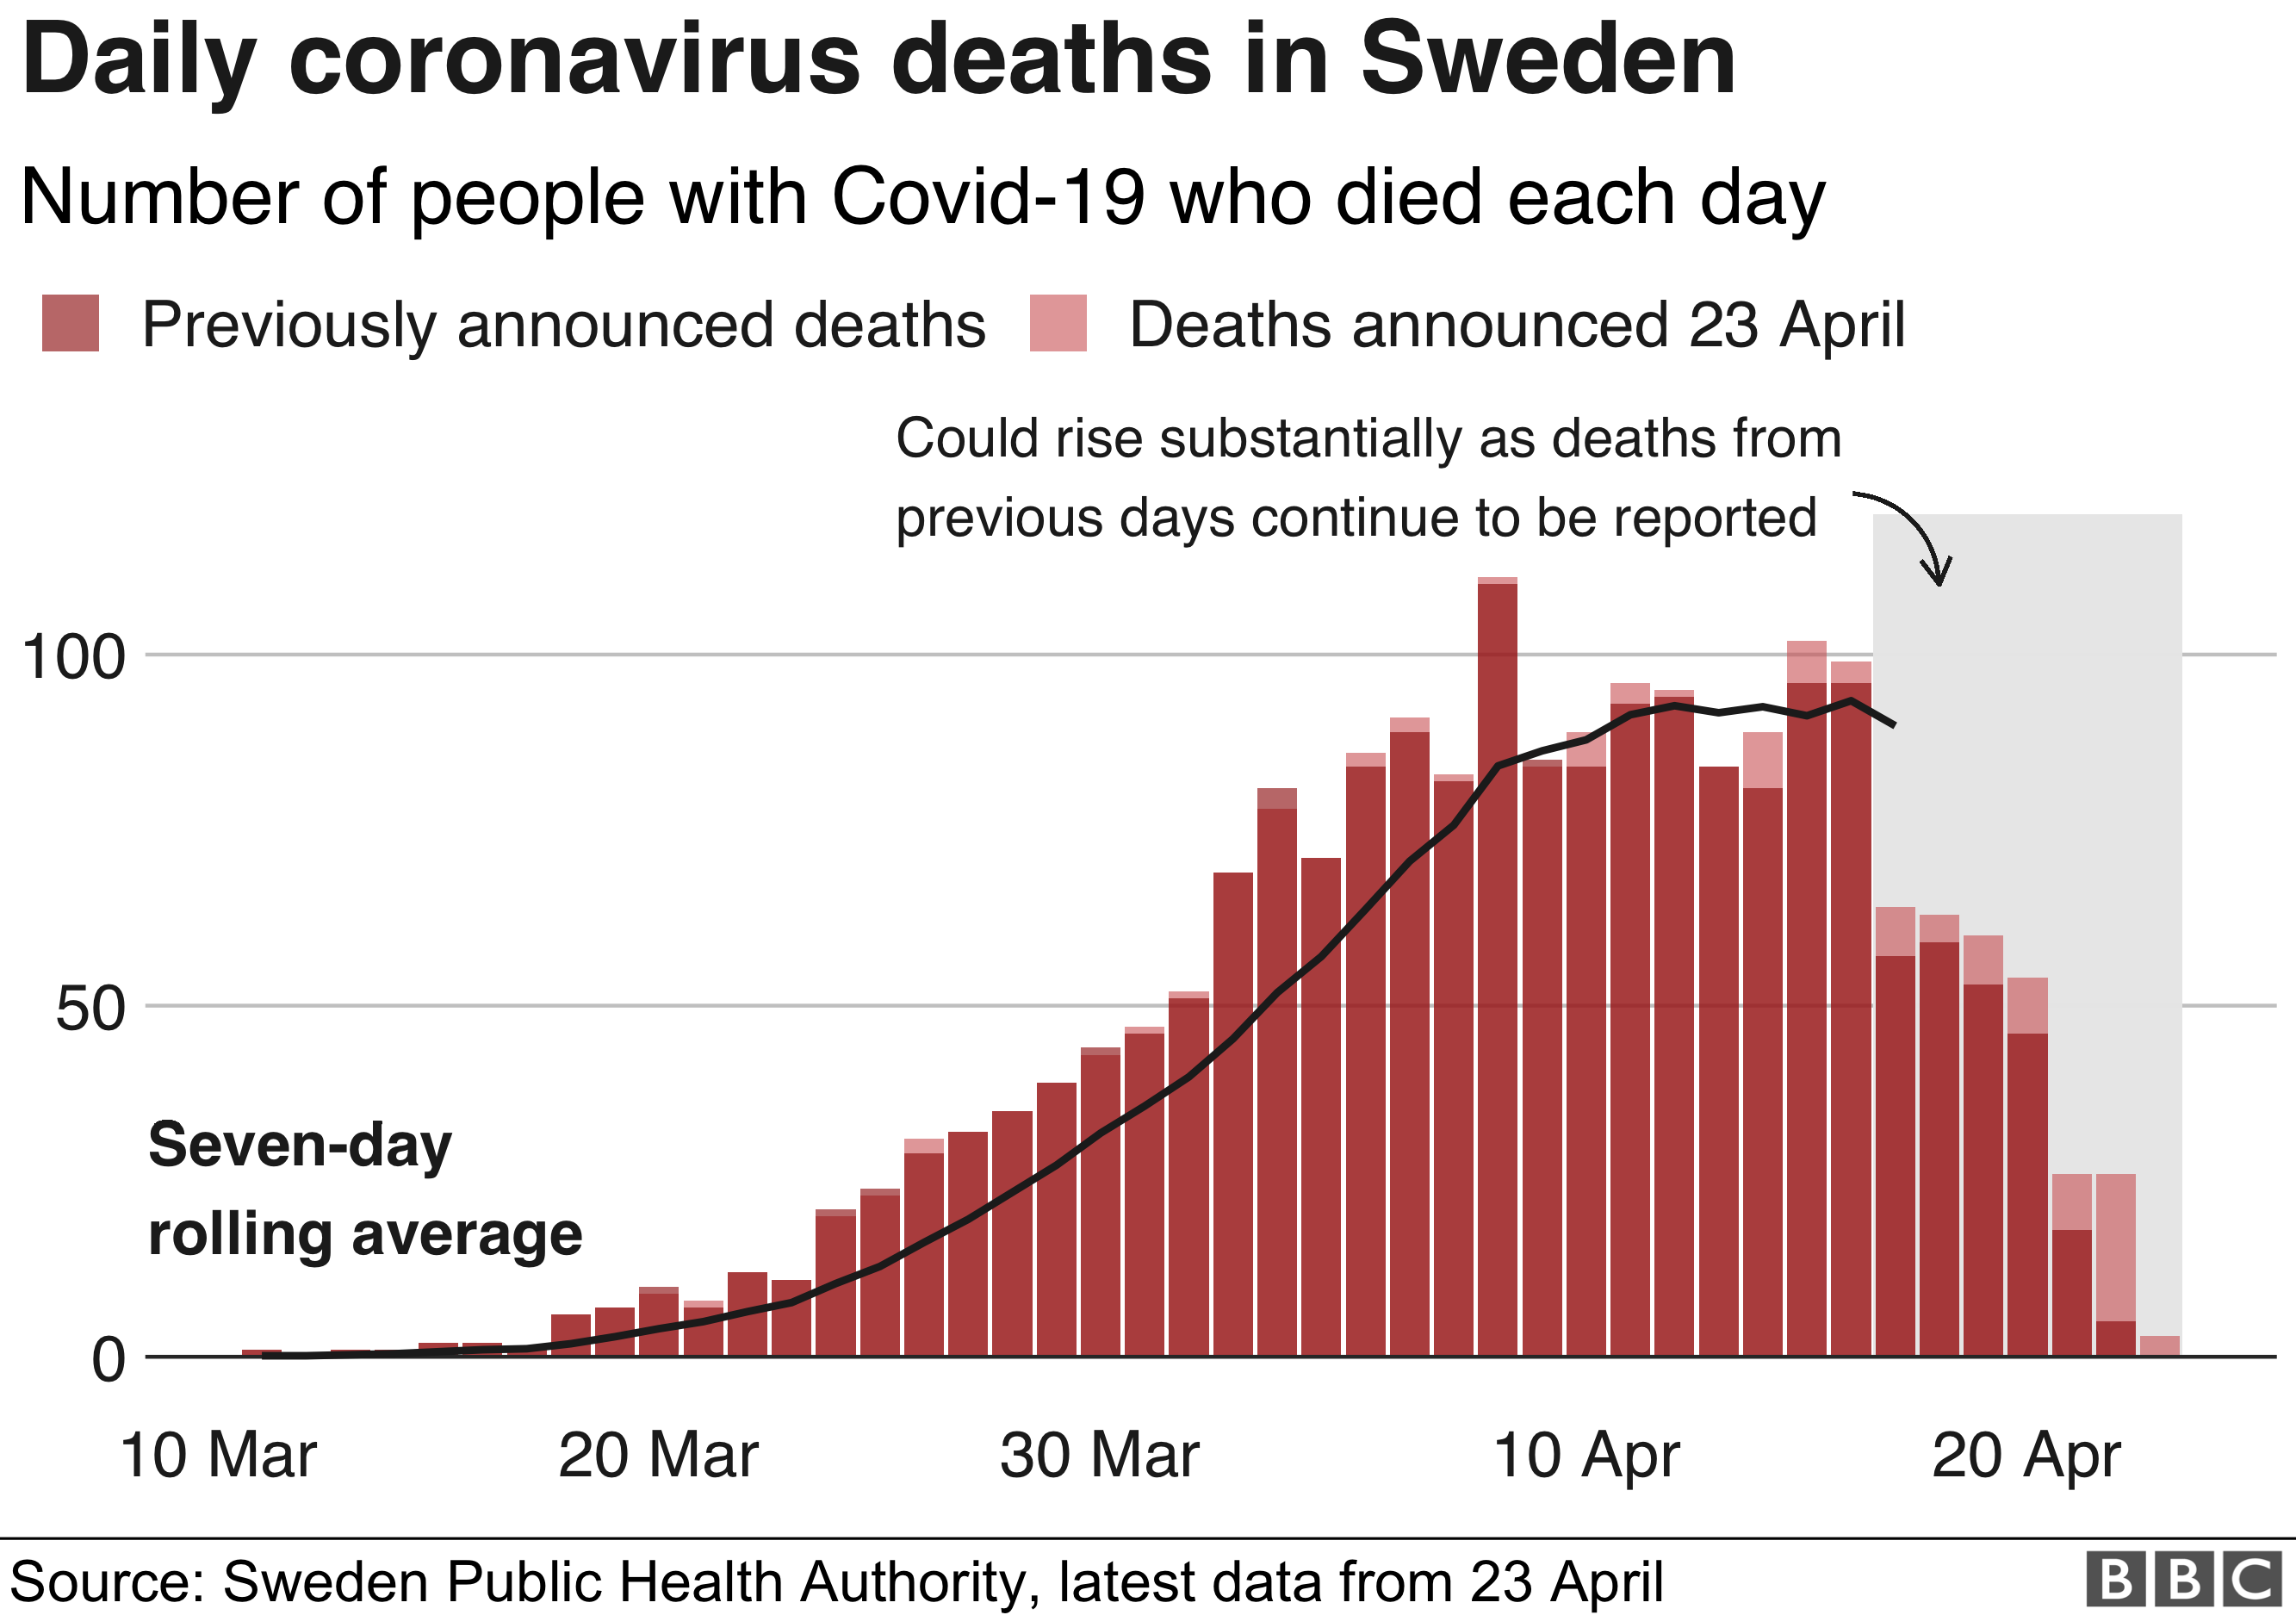 Chart shows Swedish deaths from coronavirus daily